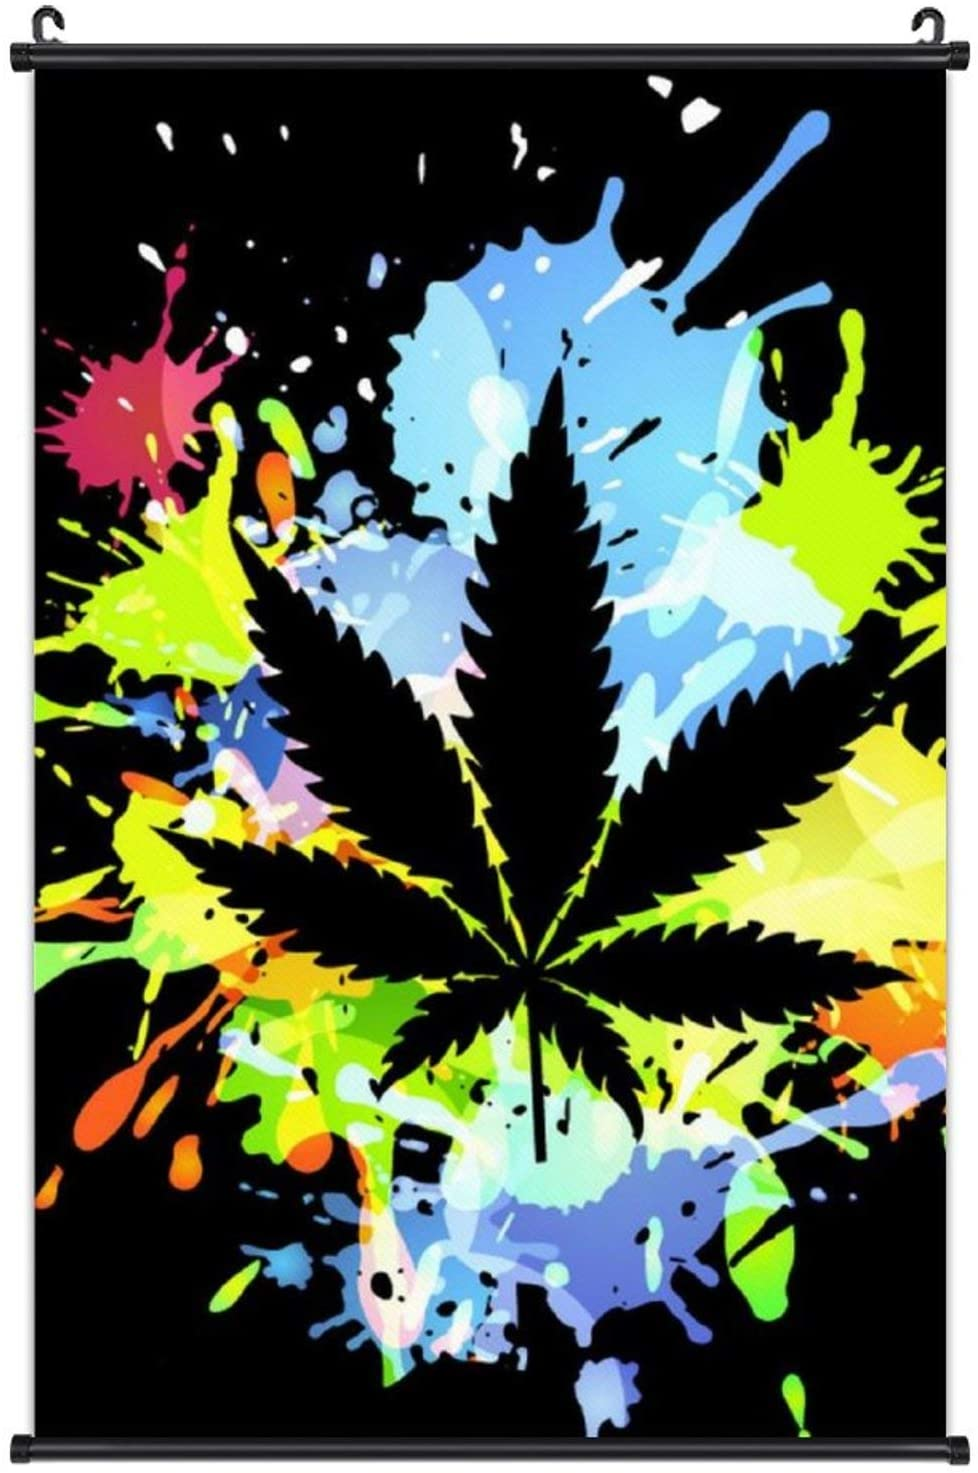 Wall Decor Canvas Prints Abstract Geometry Pictures Poster Hangs A Picture Ready to Hang for Home Walls Room Decor 16x24 Inches (Splash Ink Marijuana Weed Cannabis Leaves Black)